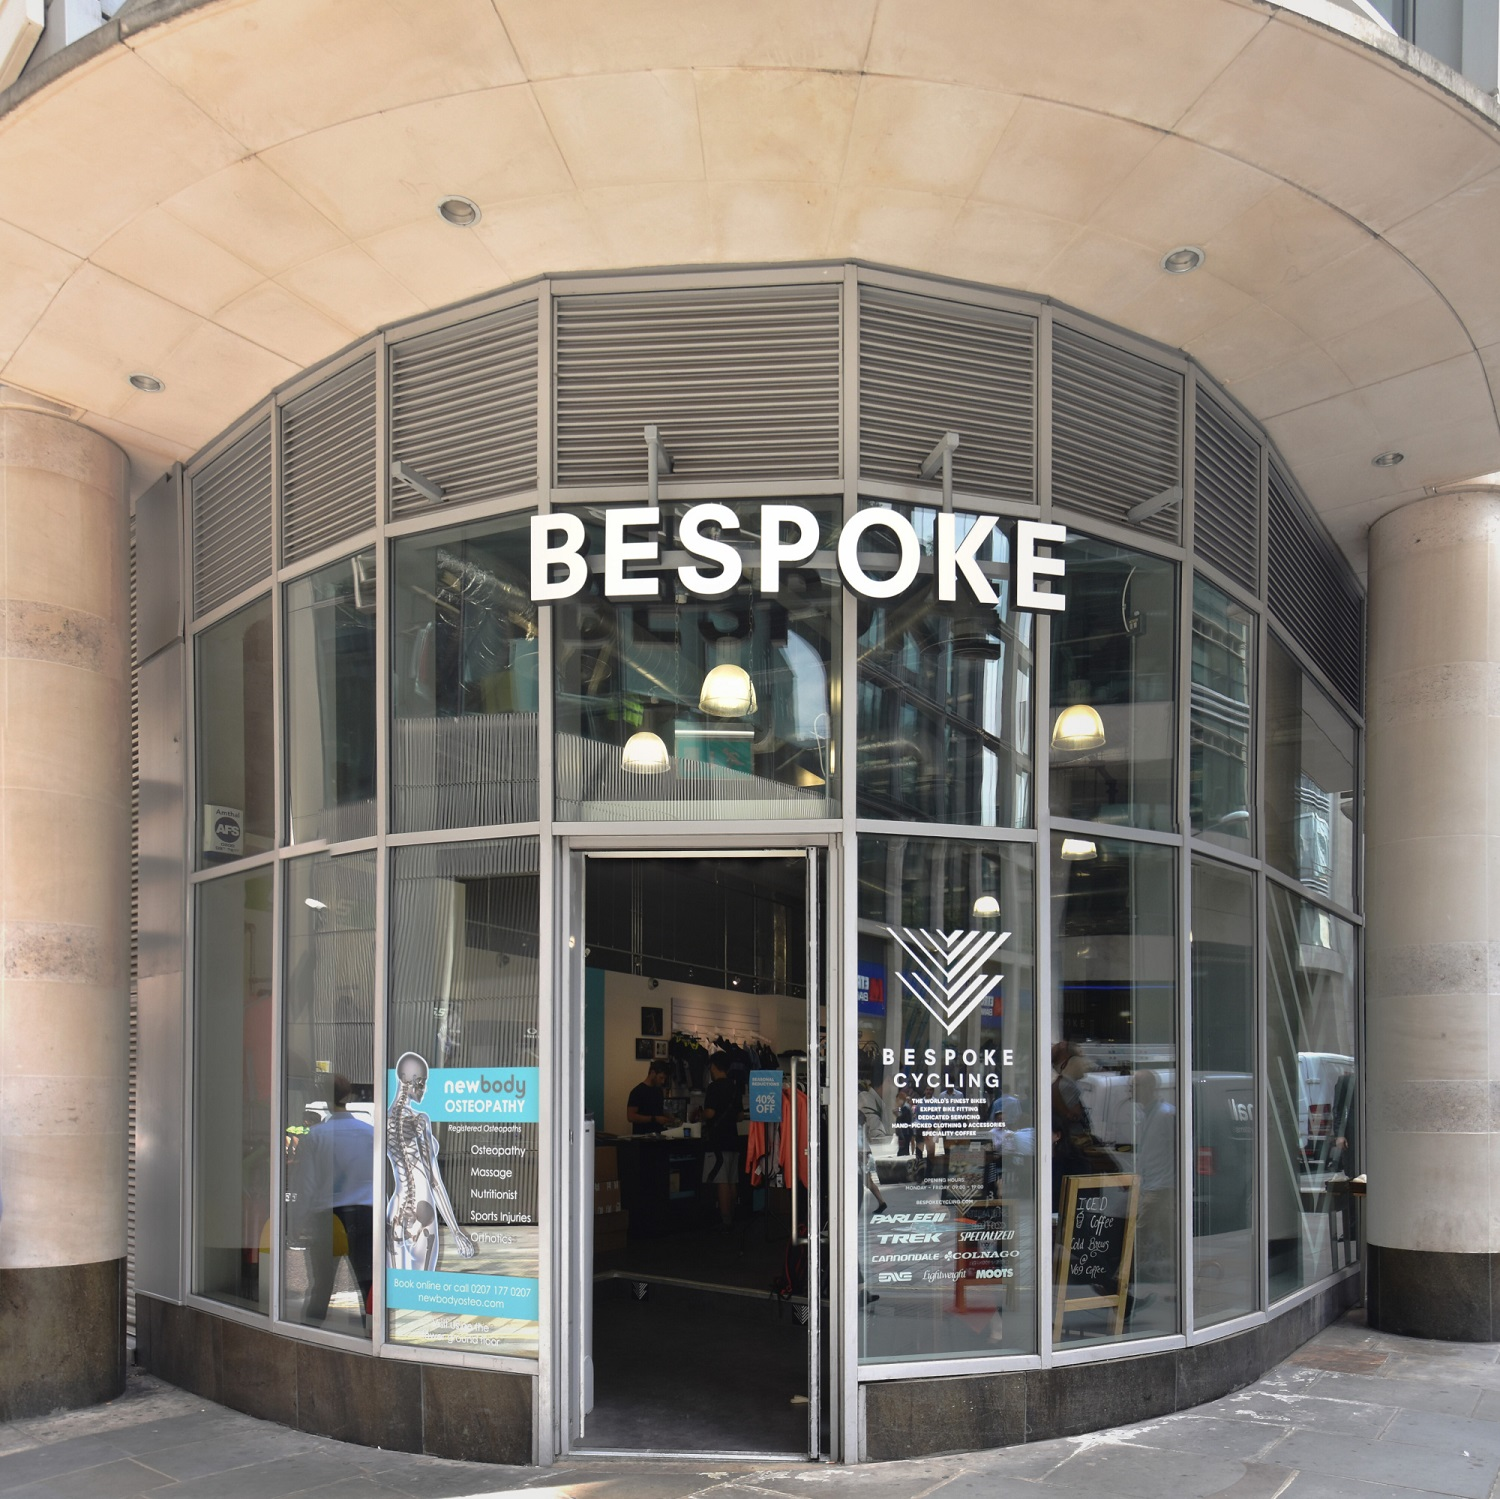 The front of Bespoke Cycling on Milk Street in the City of London, home of V69.